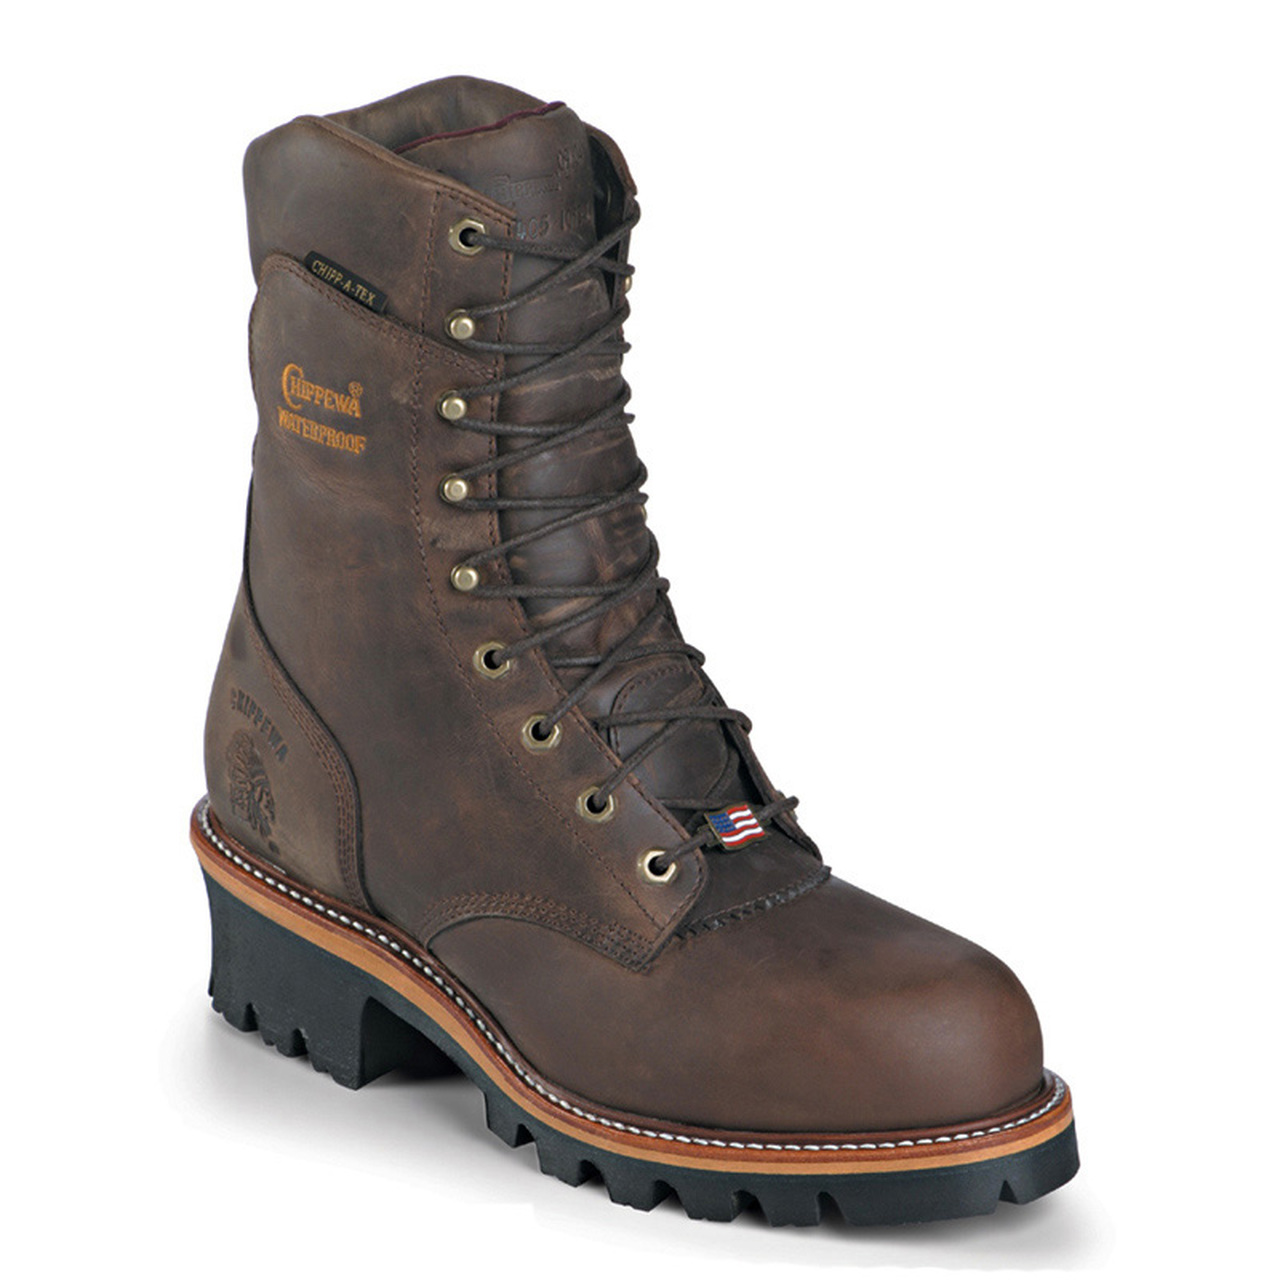 Chippewa Super Loggers are Handcrafted in the USA and made with Premium Leather